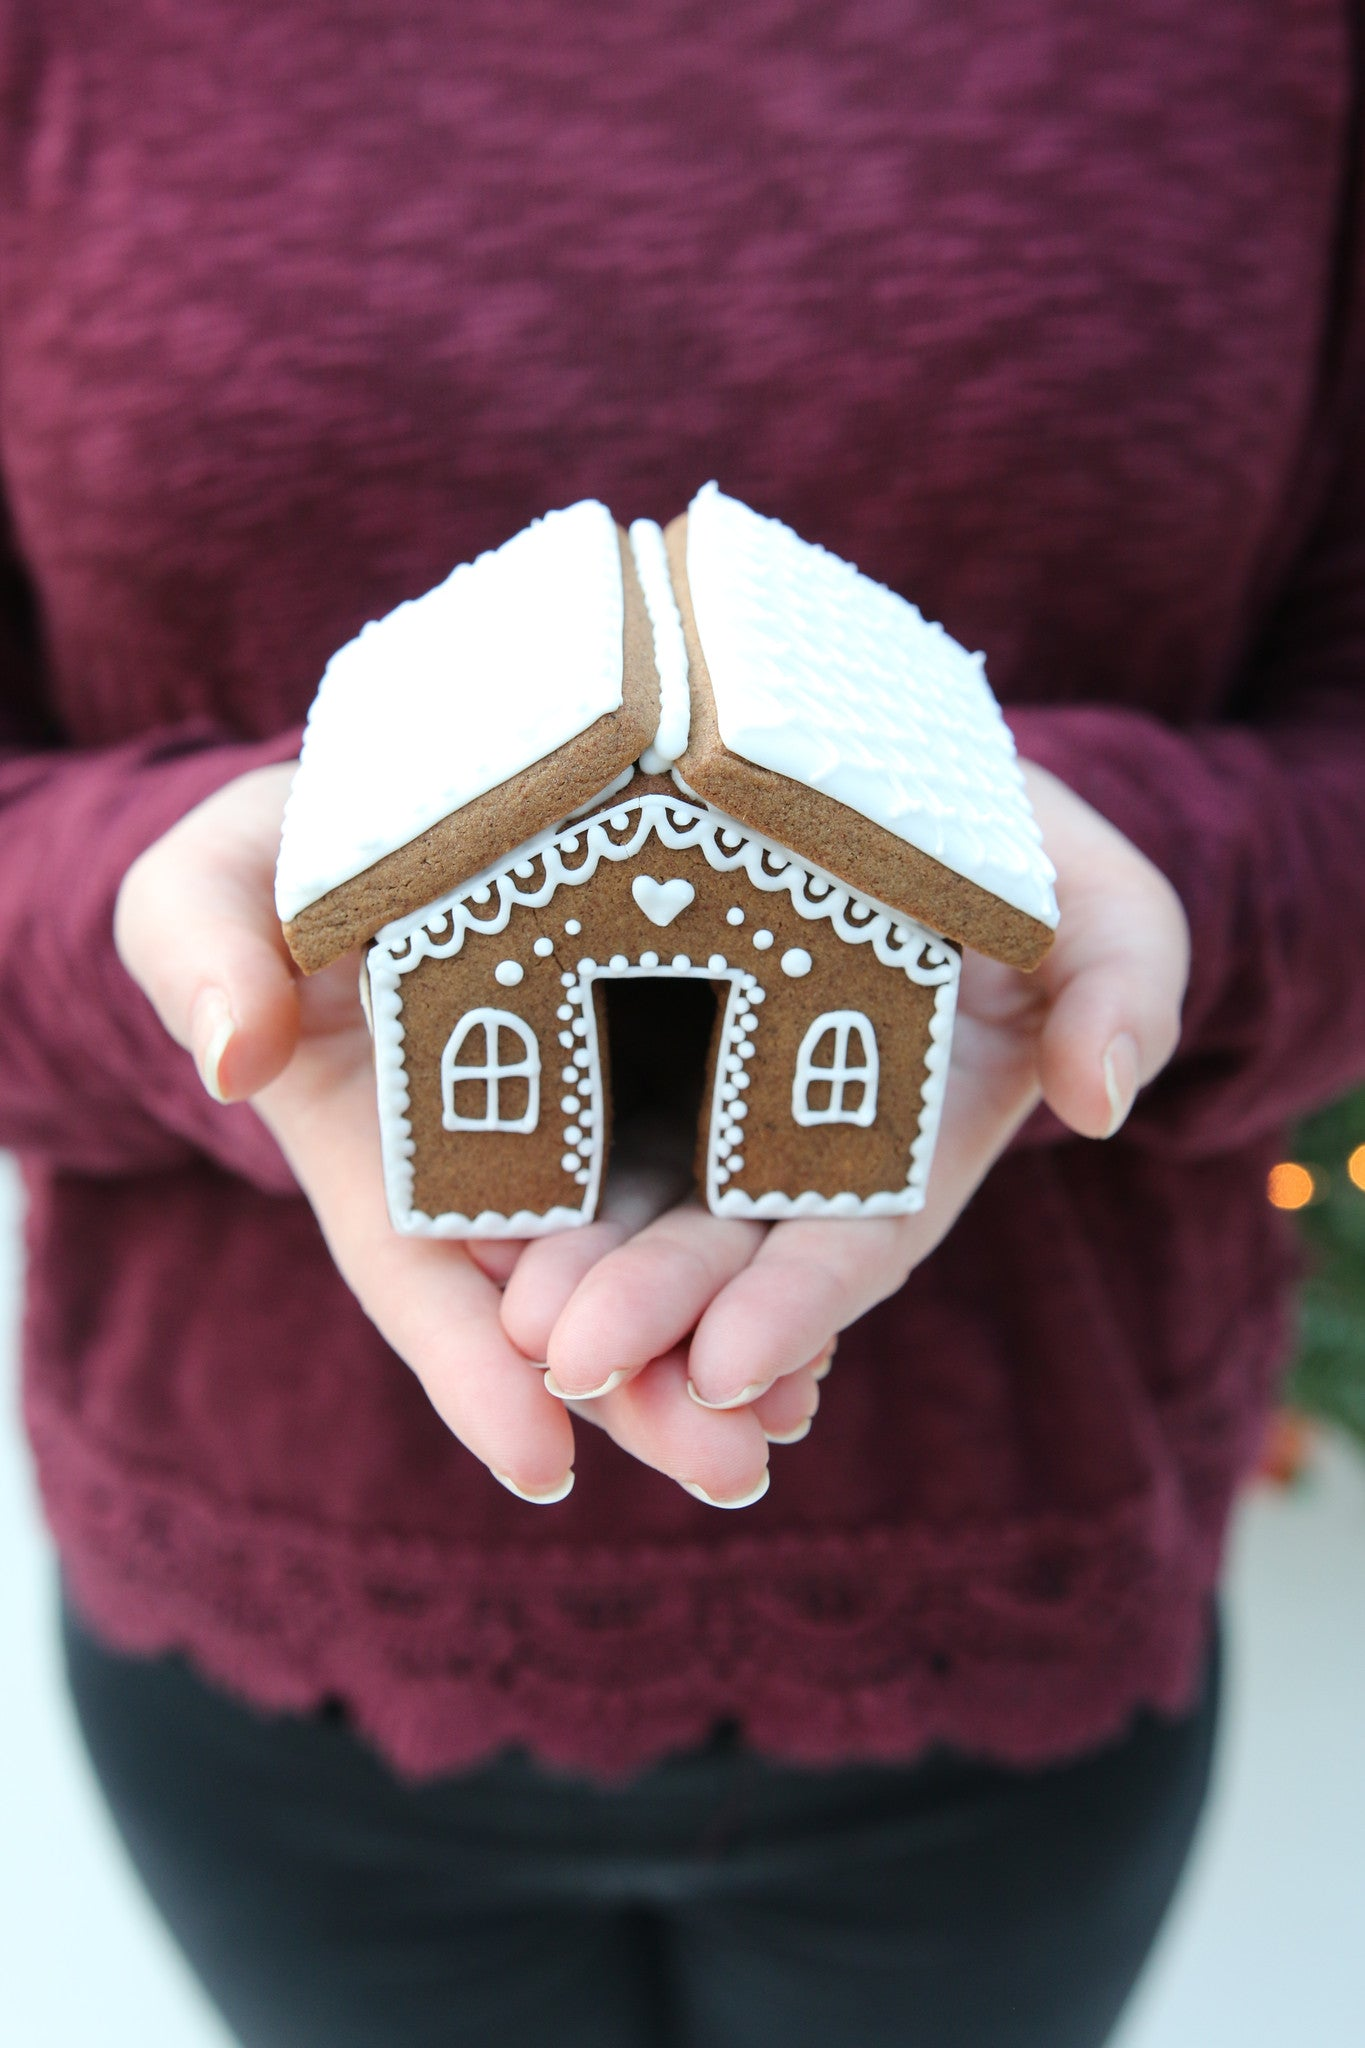 Christmas Mini Gingerbread House in Hands